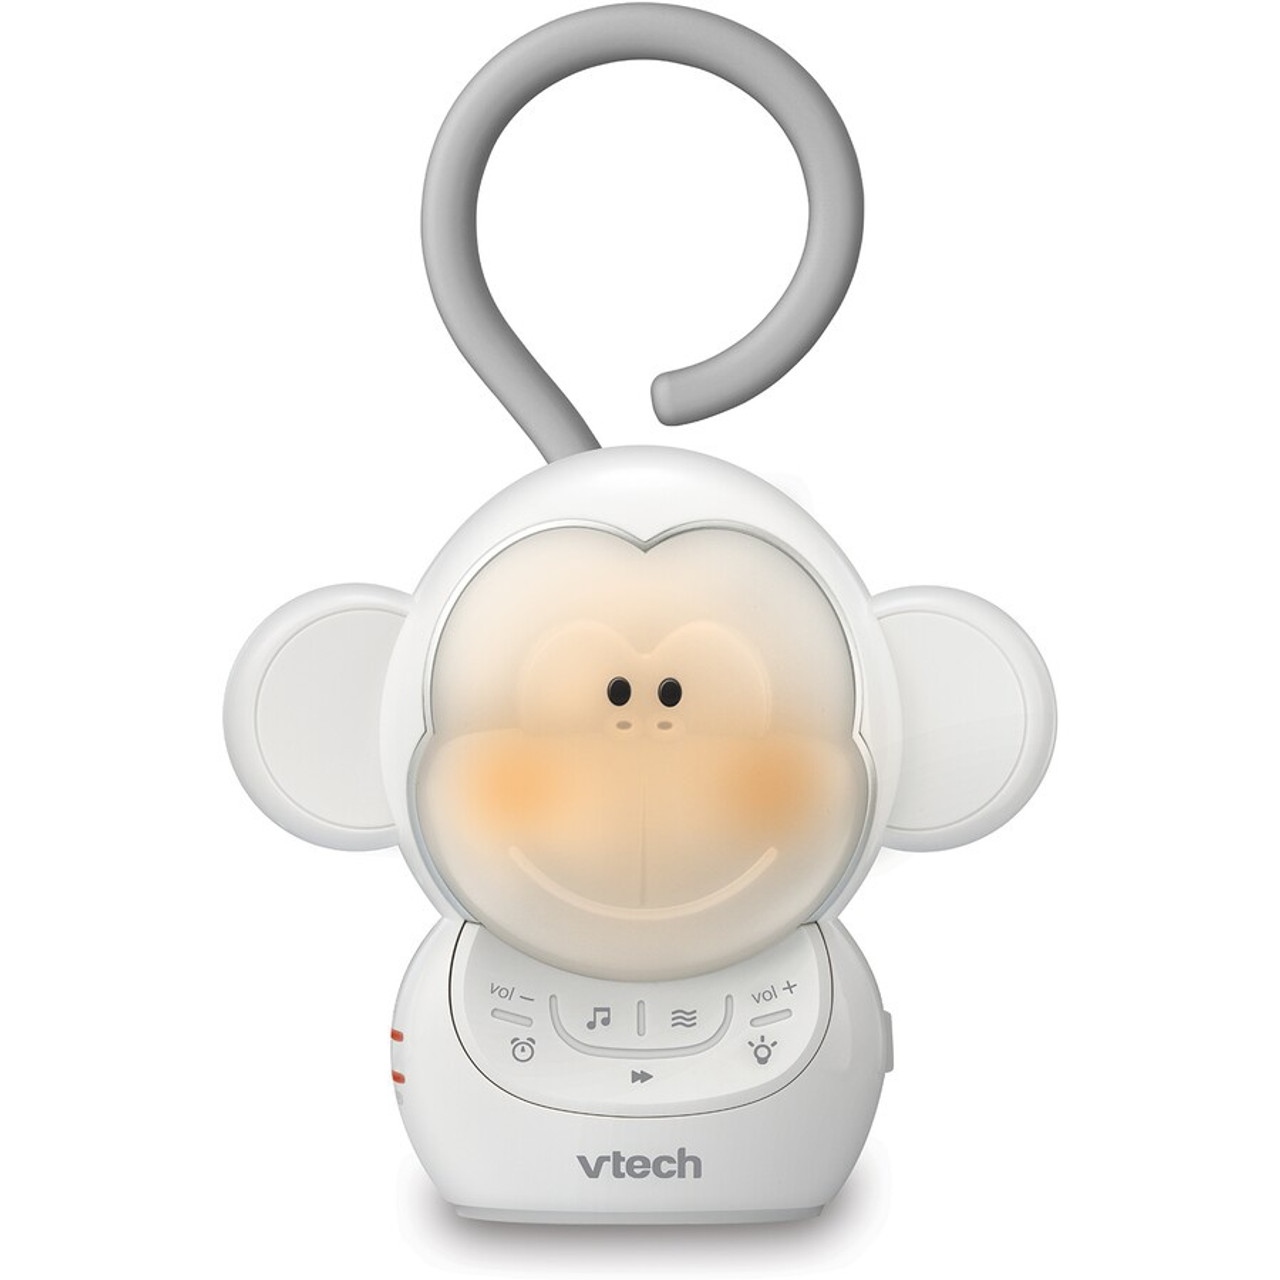 Vtech Portable Soother ST1000 at Baby Barn Discounts Help your baby rest easy with a VTech portable soother.